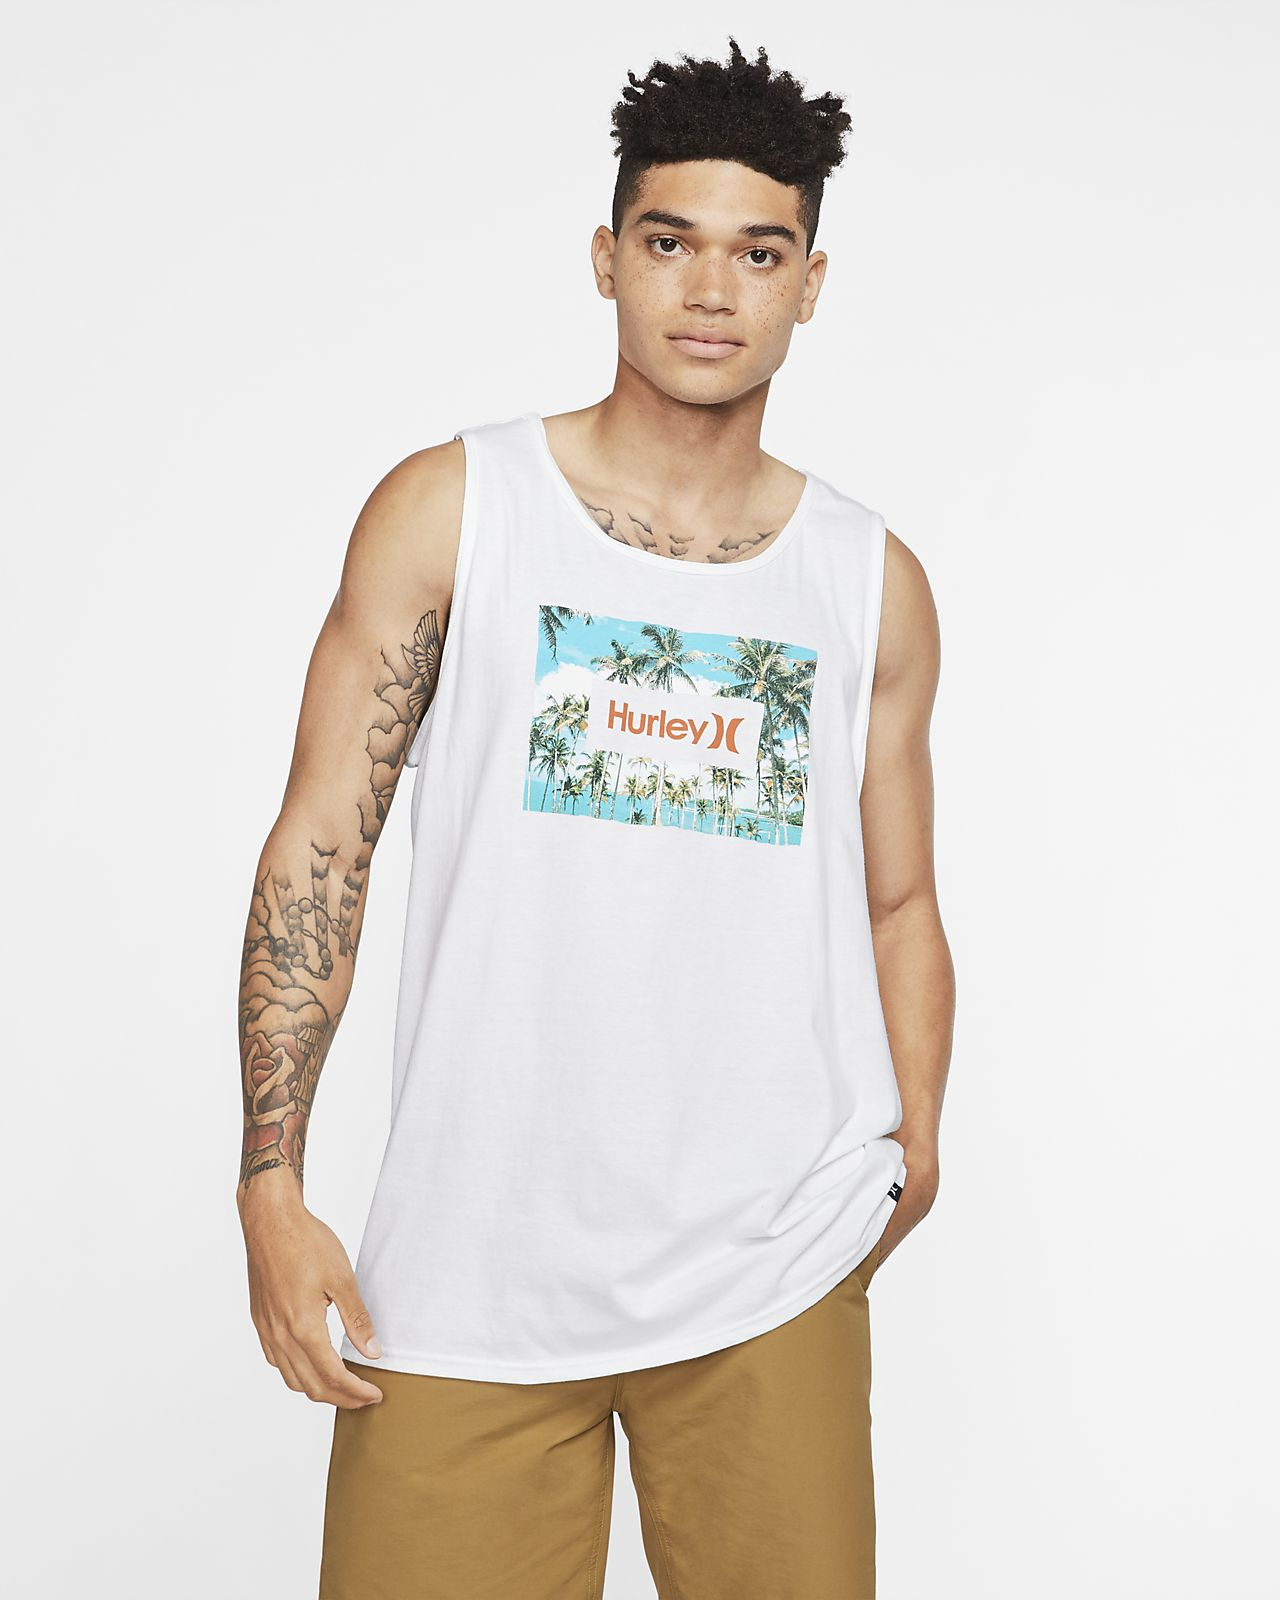 Hurley Premium Boarders Men's Premium Fit Tank